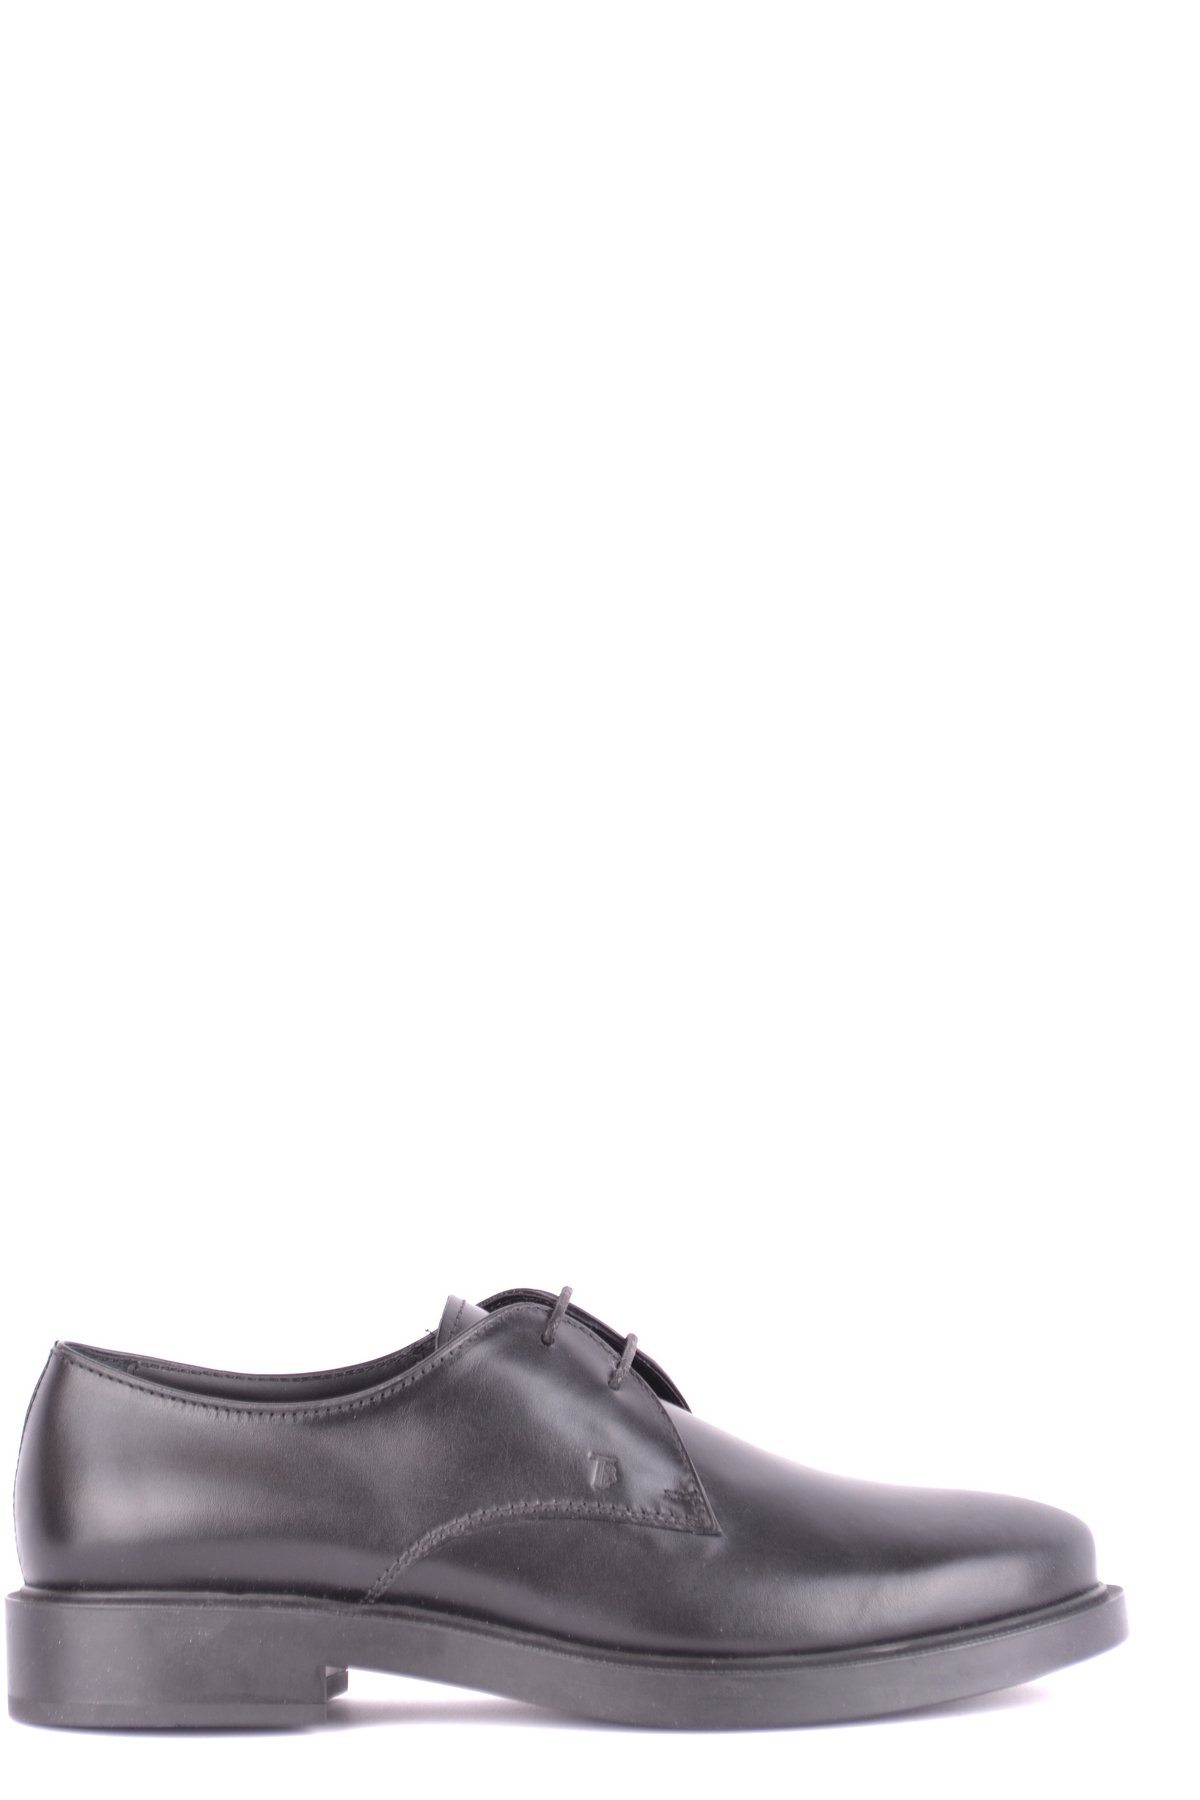 Tod's Women's Mcbi293235o Black Leather Lace-Up Shoes